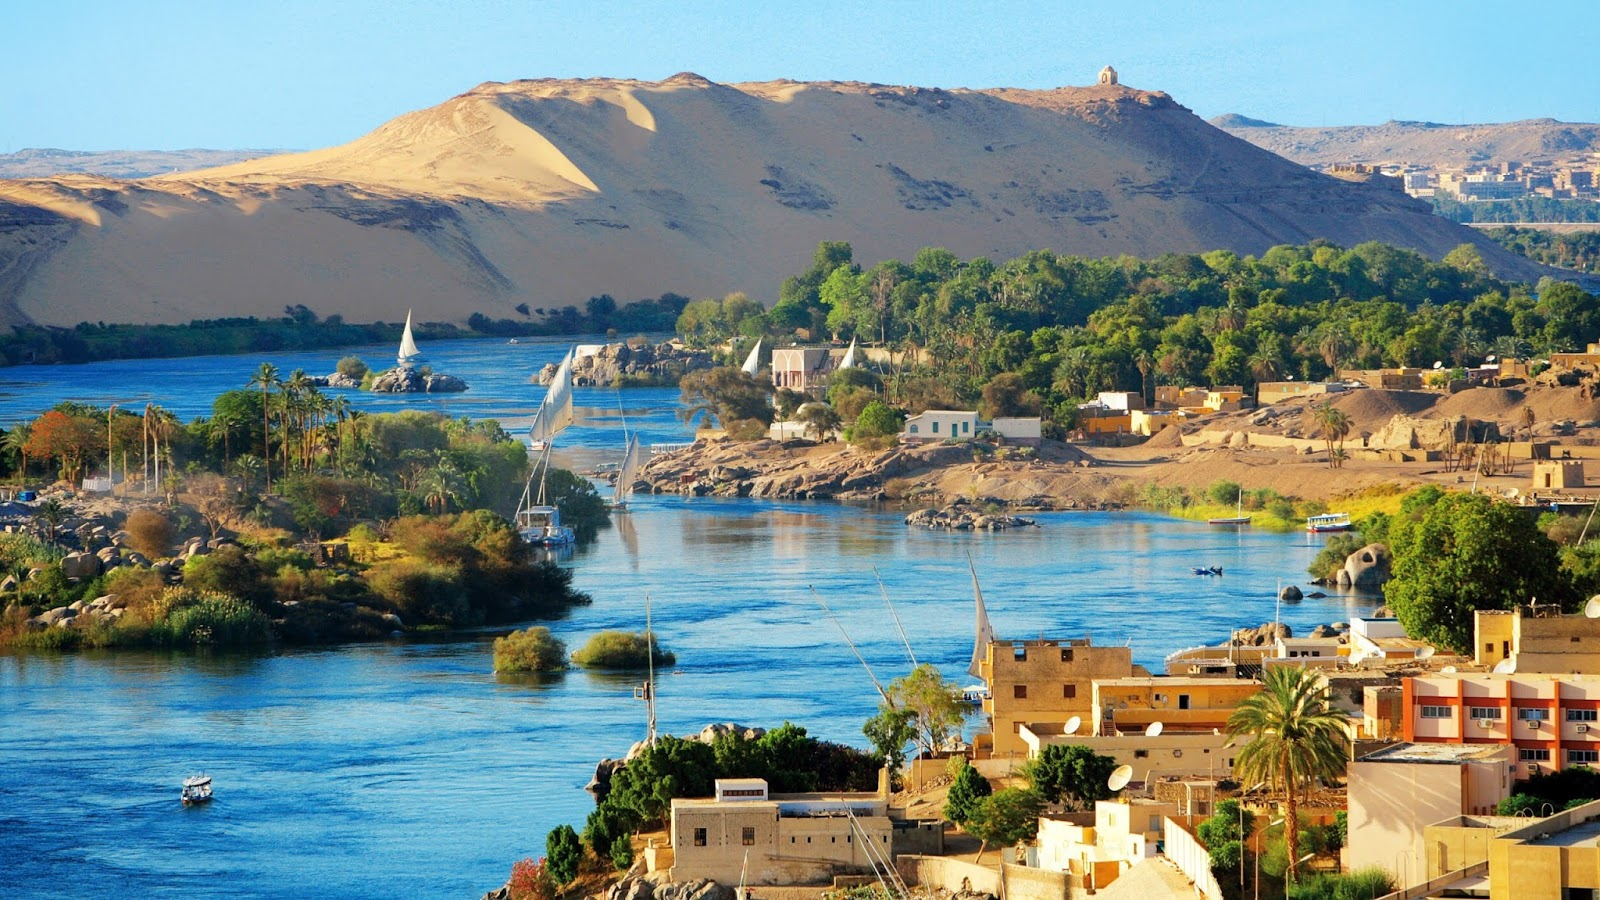 The best backdrop of the Nile from Aswan is the country of beauty and greenery